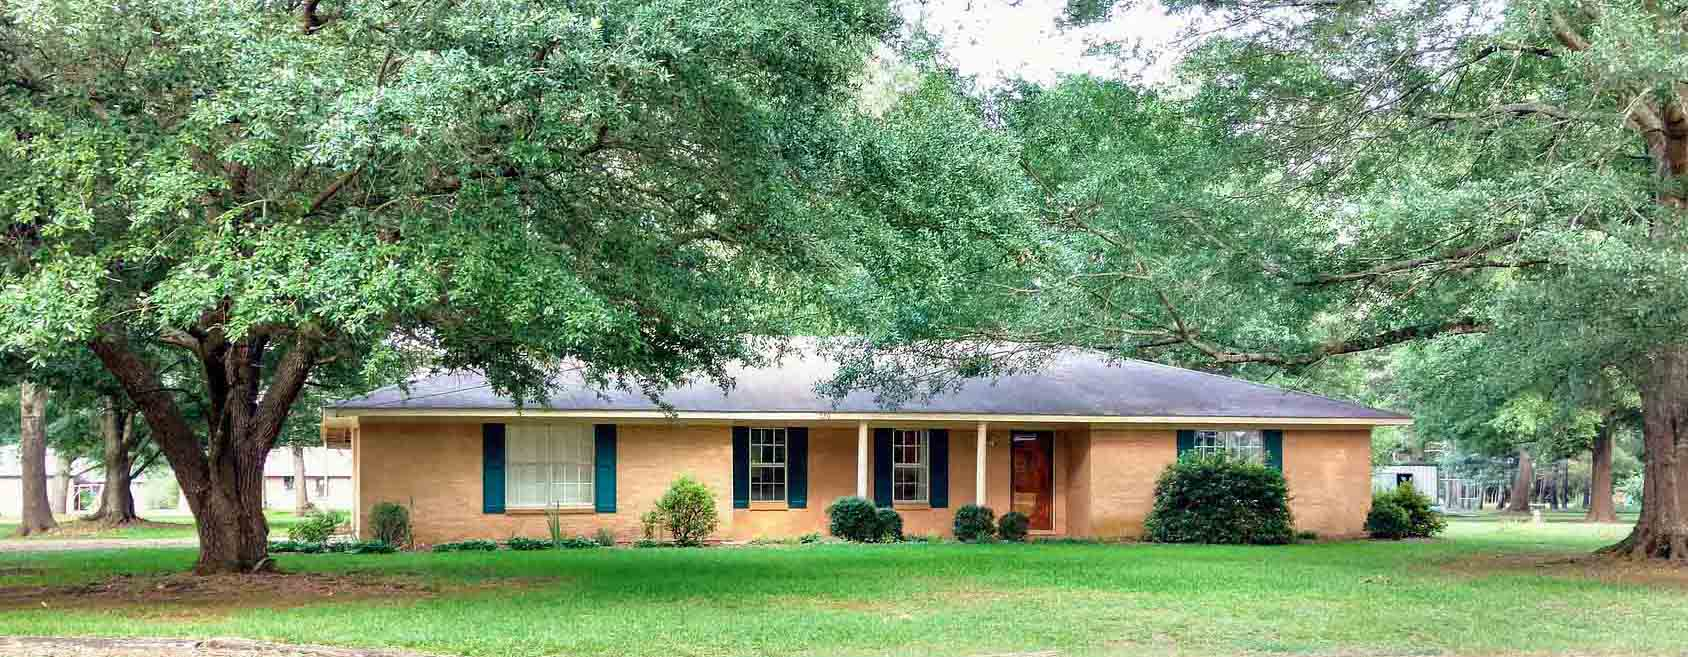 Oakwood Oasis, 320 Wilbrook Road, Brooksville, MS